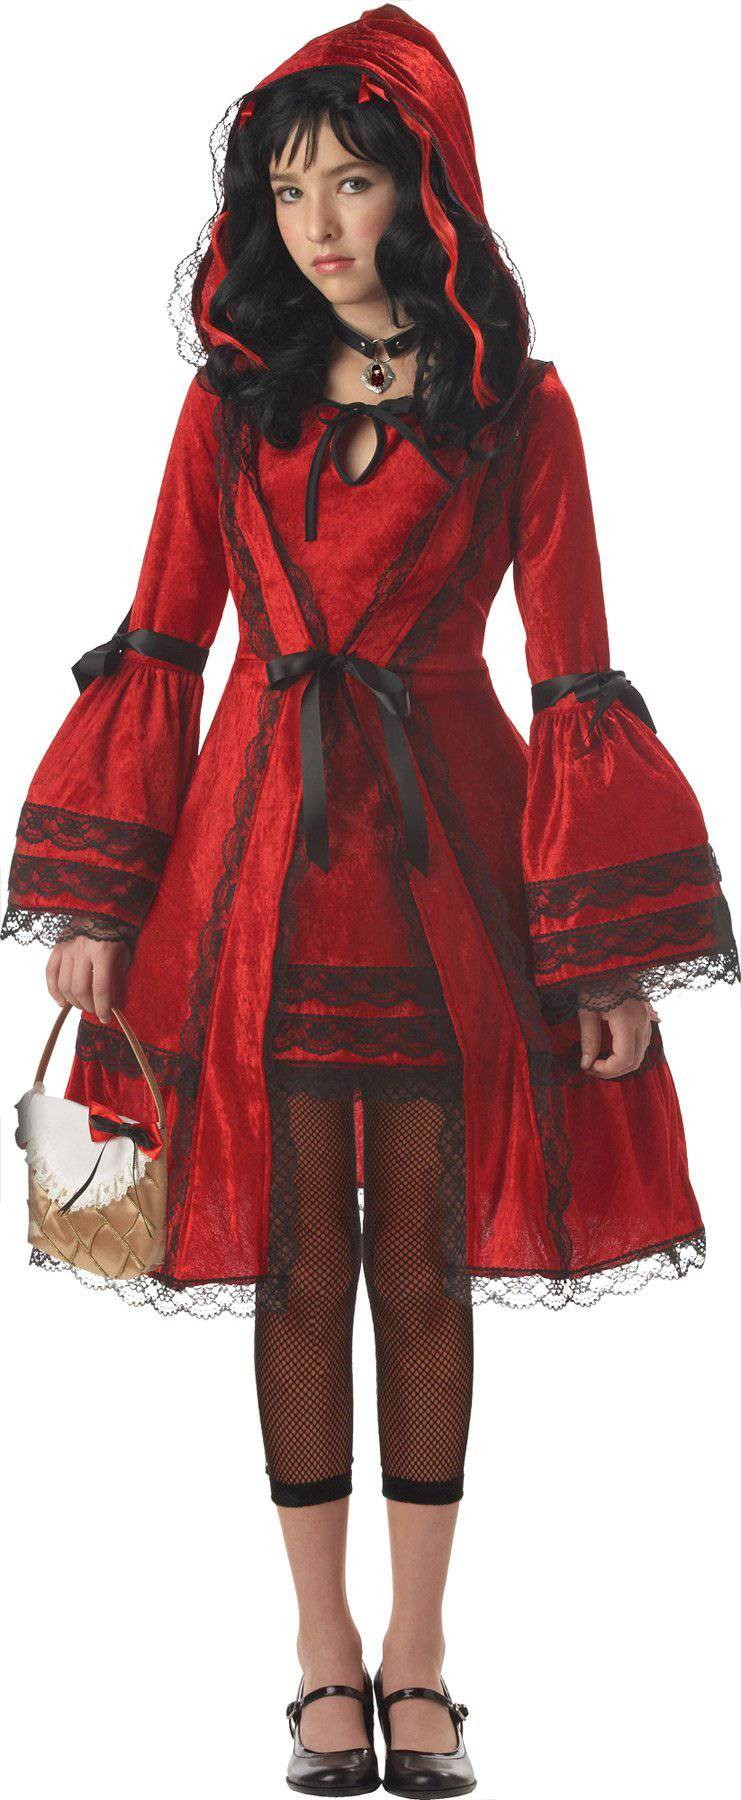 California Costumes Girls' Red Riding Hood Fancy Party Costume - Costume Arena